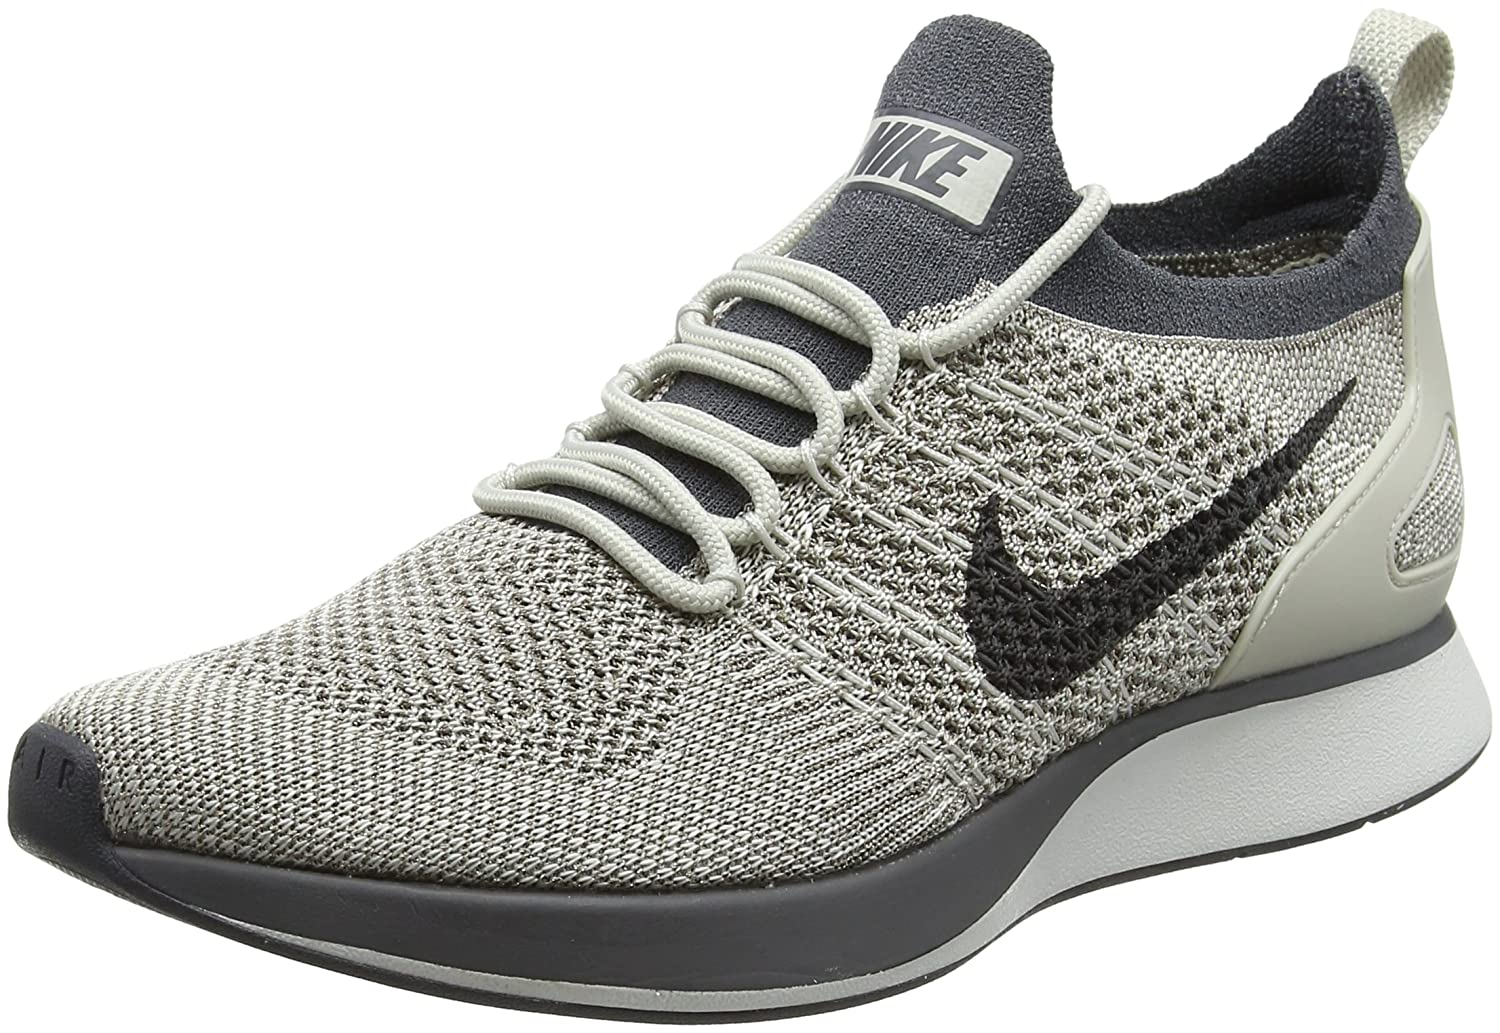 NIKE Womens Air Zoom Mariah Flyknit Racer Running Trainers Aa0521 Sneakers Shoes B0761V2H7K 10 B(M) US|Pale Grey / Dark Grey